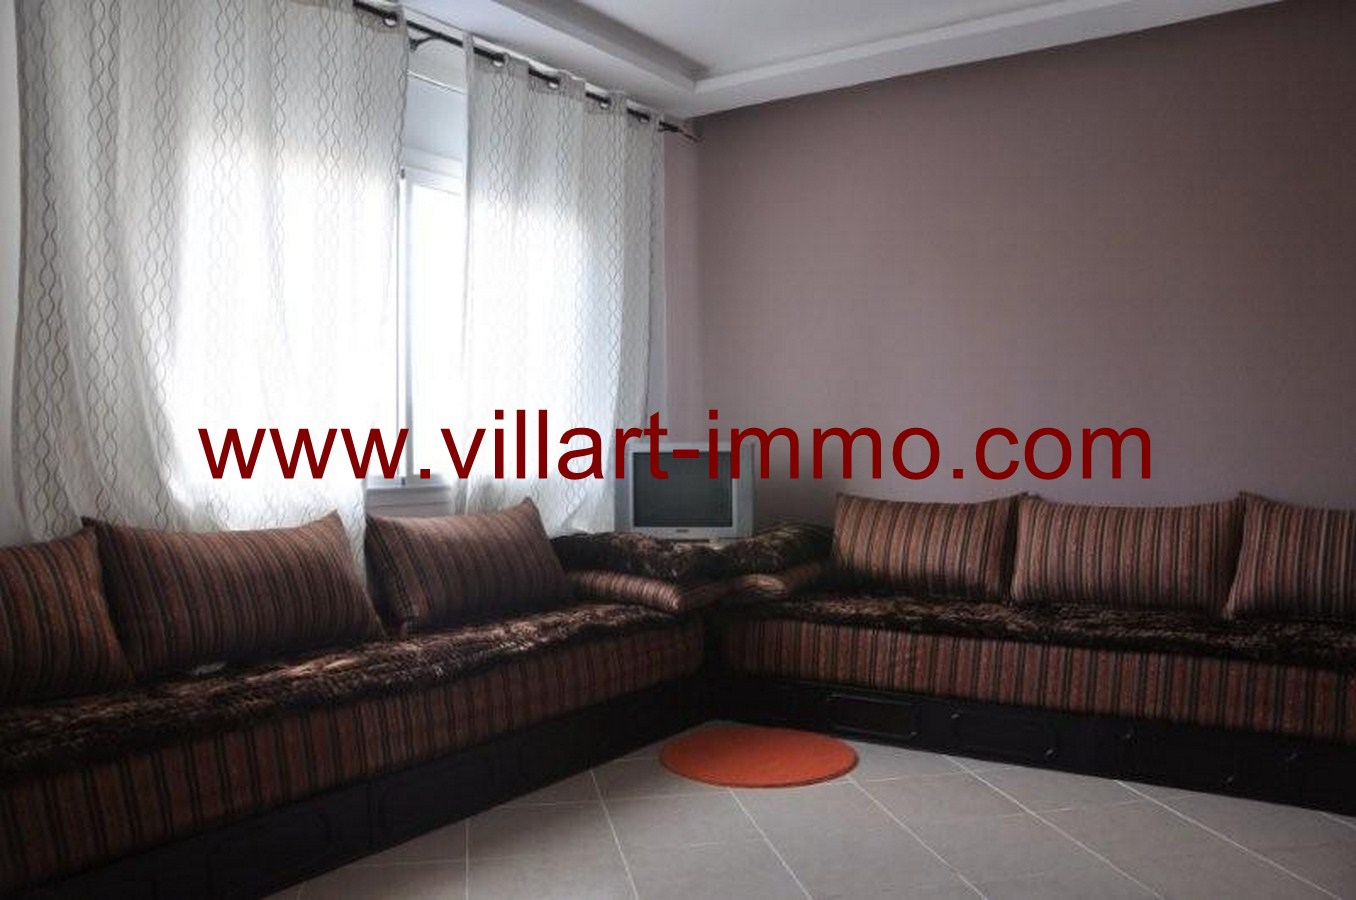 3-Tanger-Location-Appartement-Meublé-Salon-L42